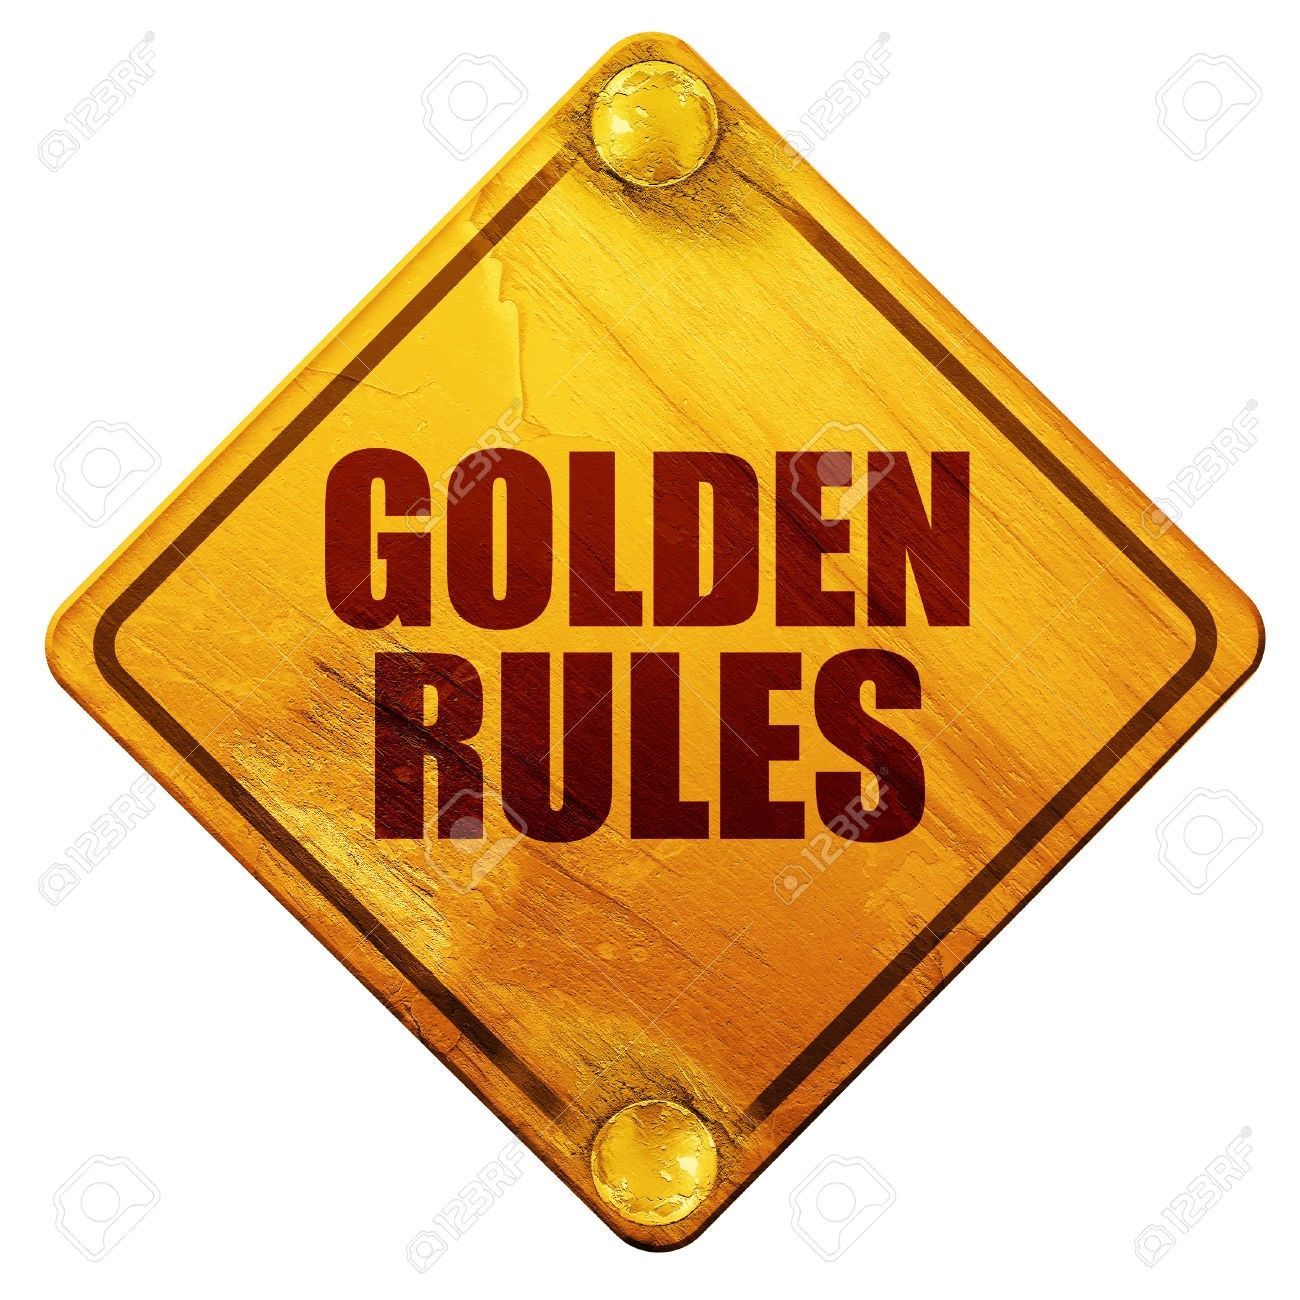 Rules clipart signage. Top golden betting tips